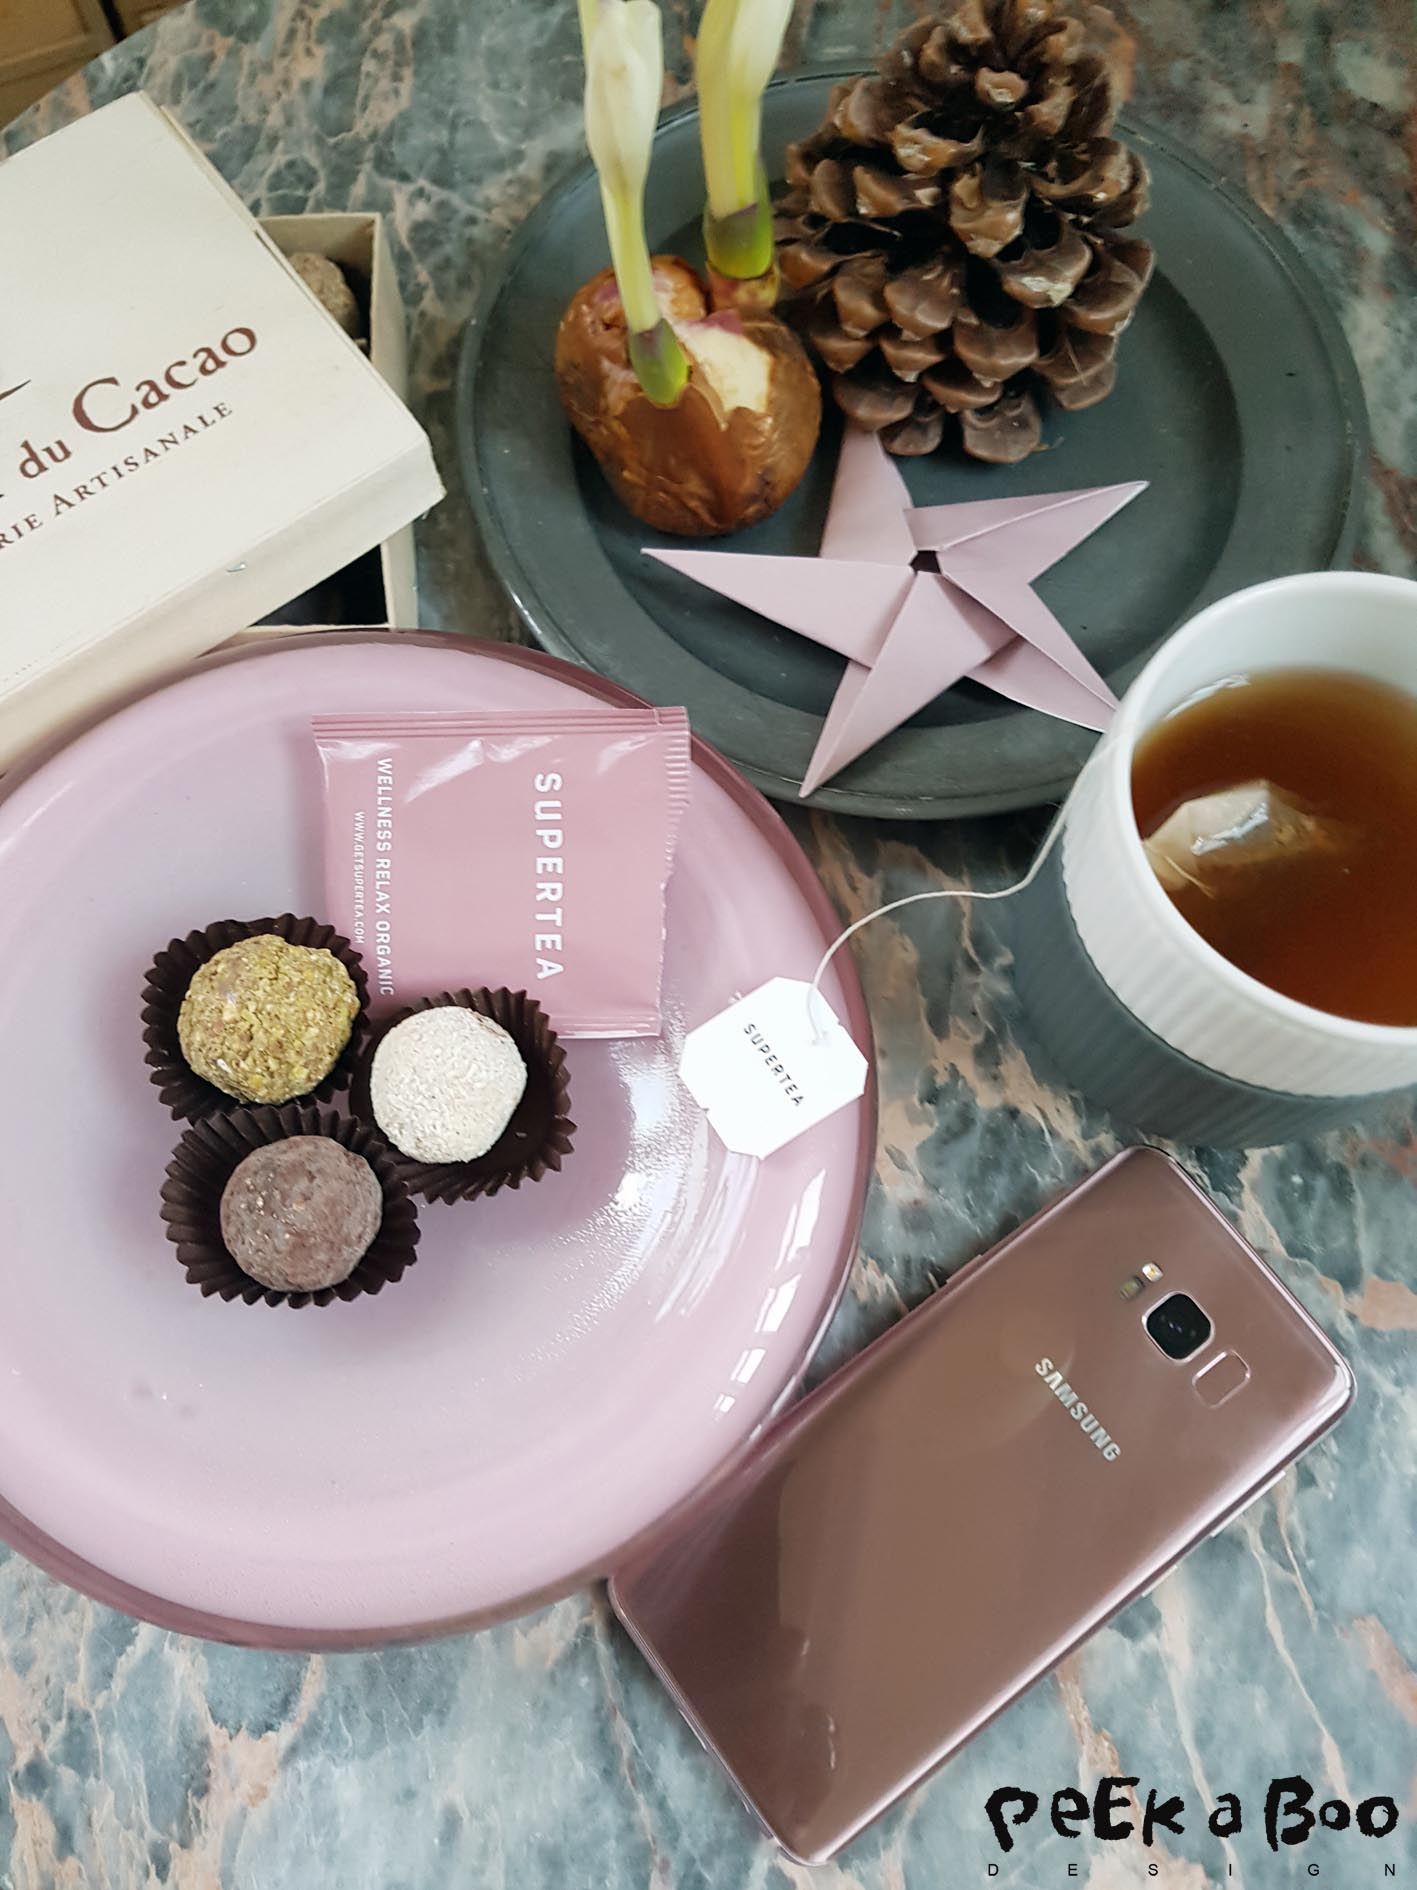 Samsung Galaxy S8 edge in the rosegold colour....Perfect wish for christmas.